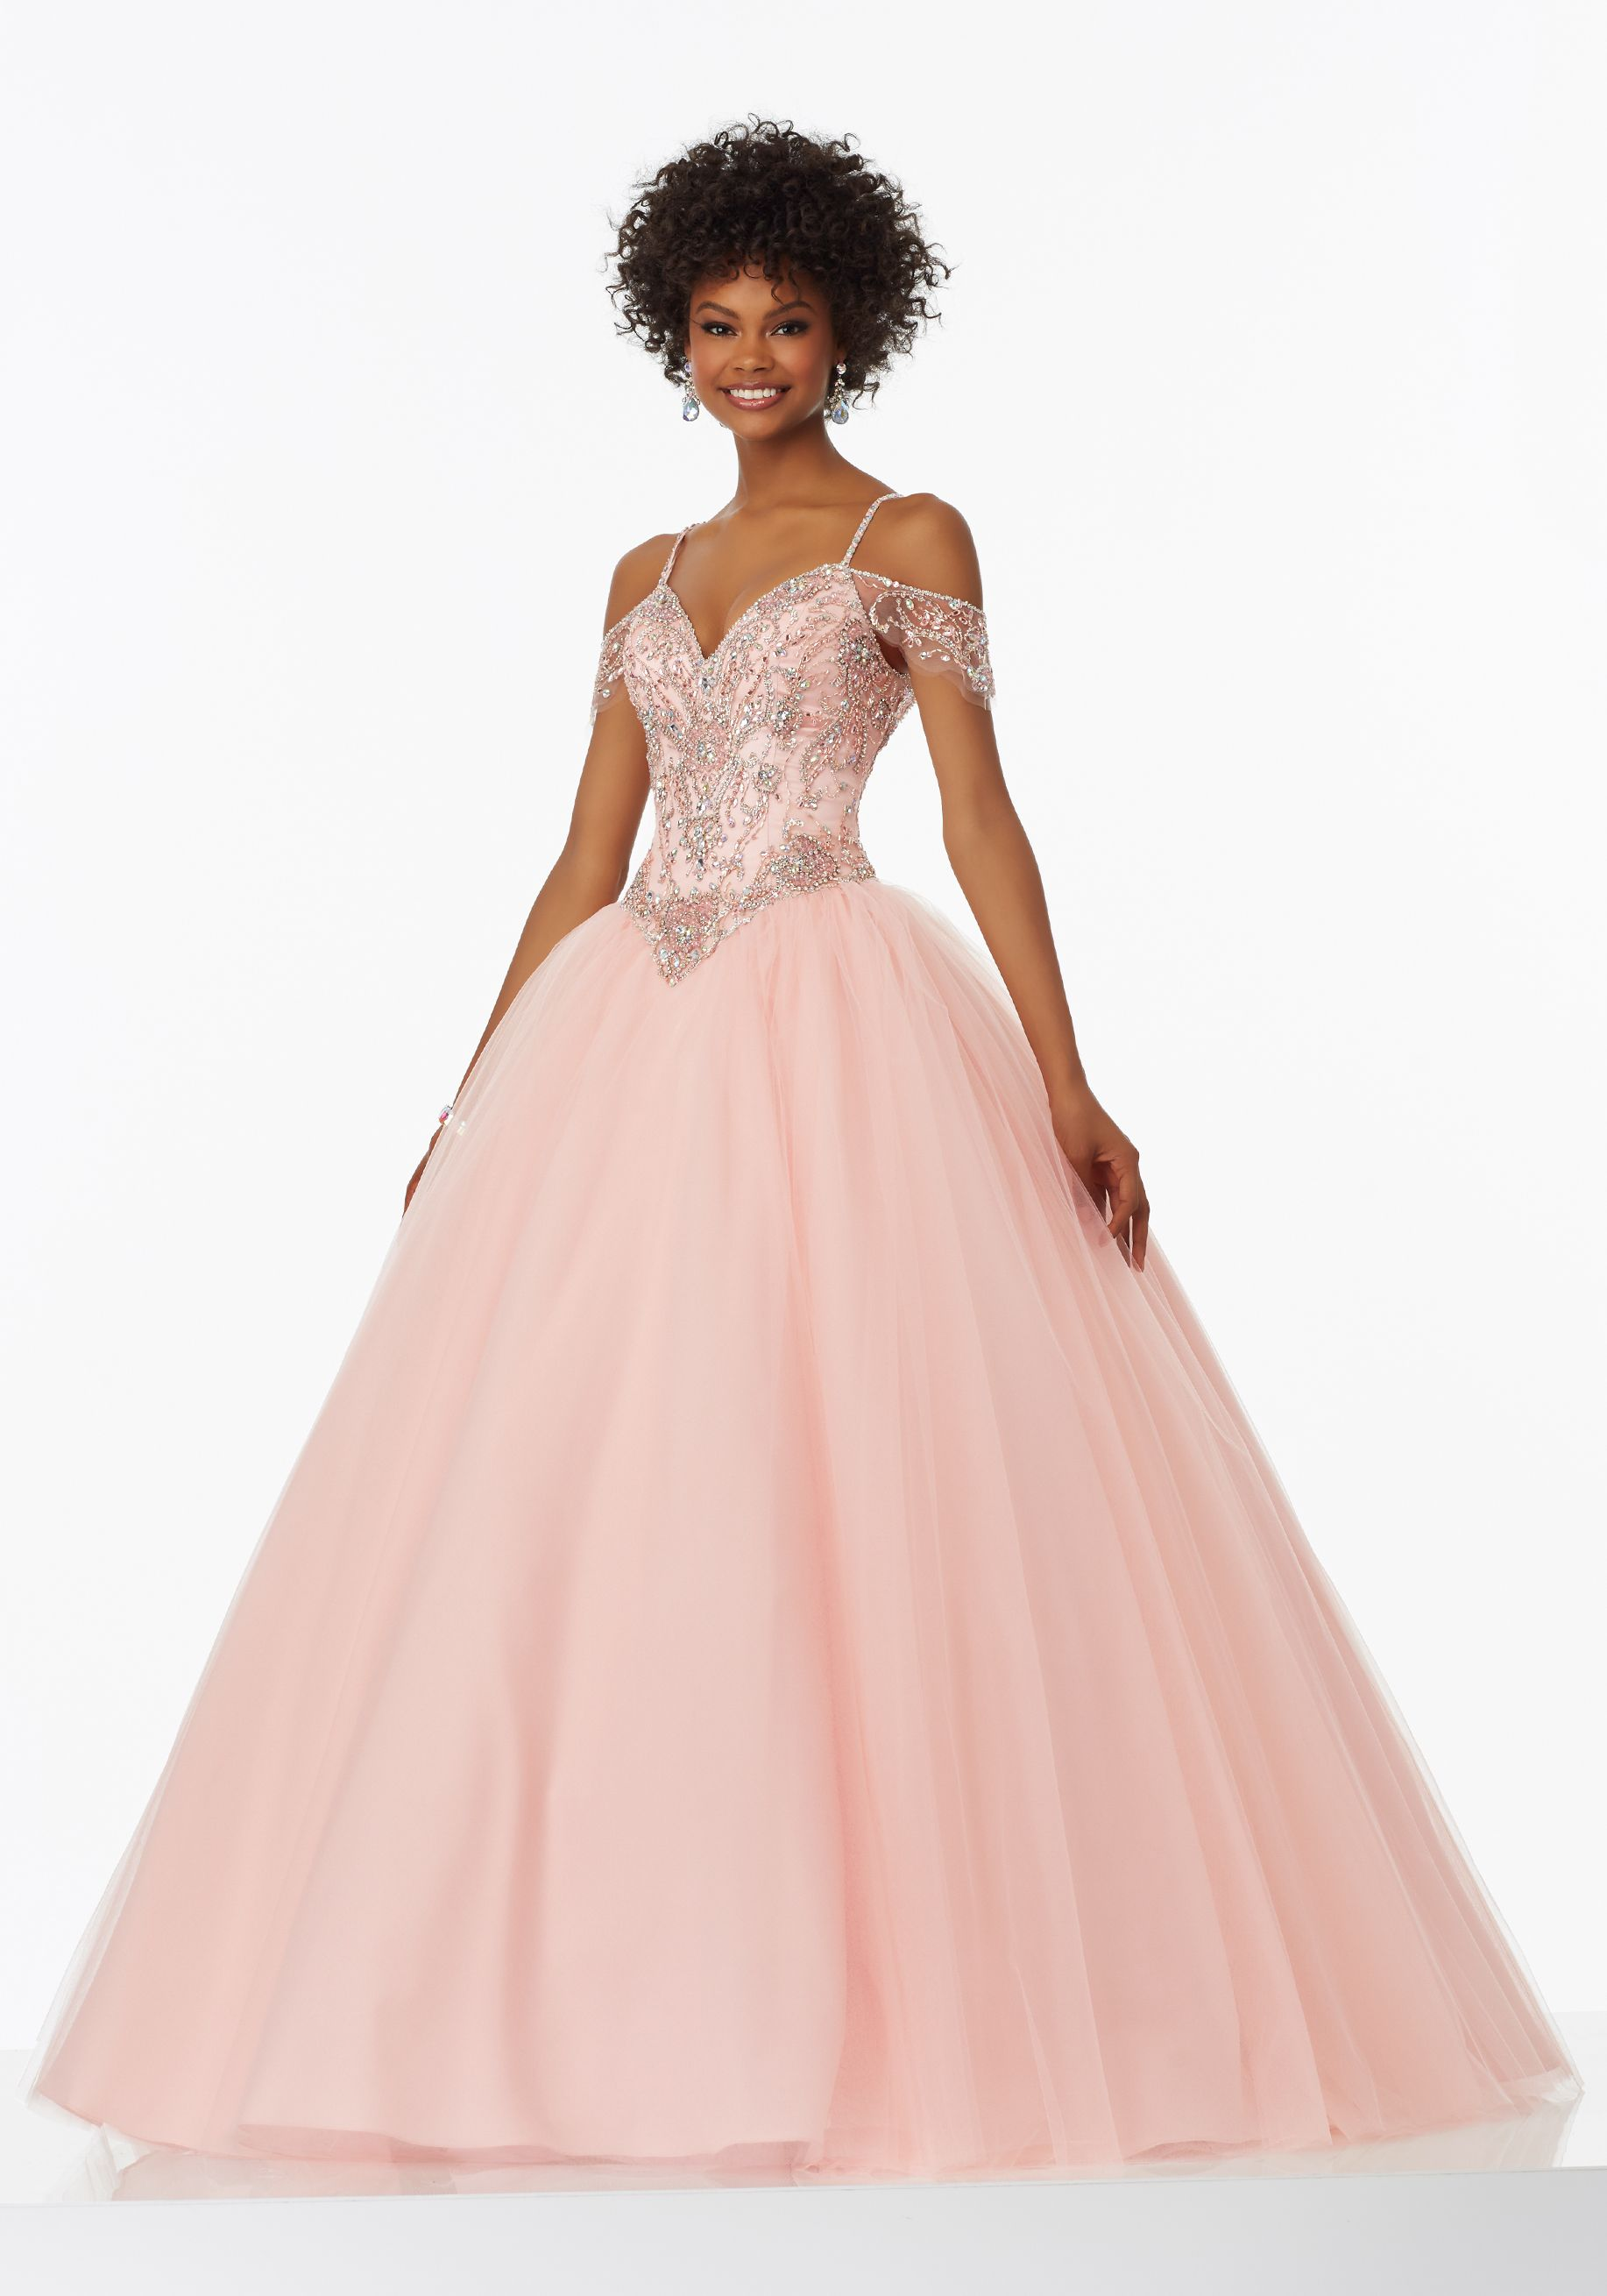 Beaded Tulle Prom Gown with Off-the-Shoulder Cap Sleeves and Basque ...